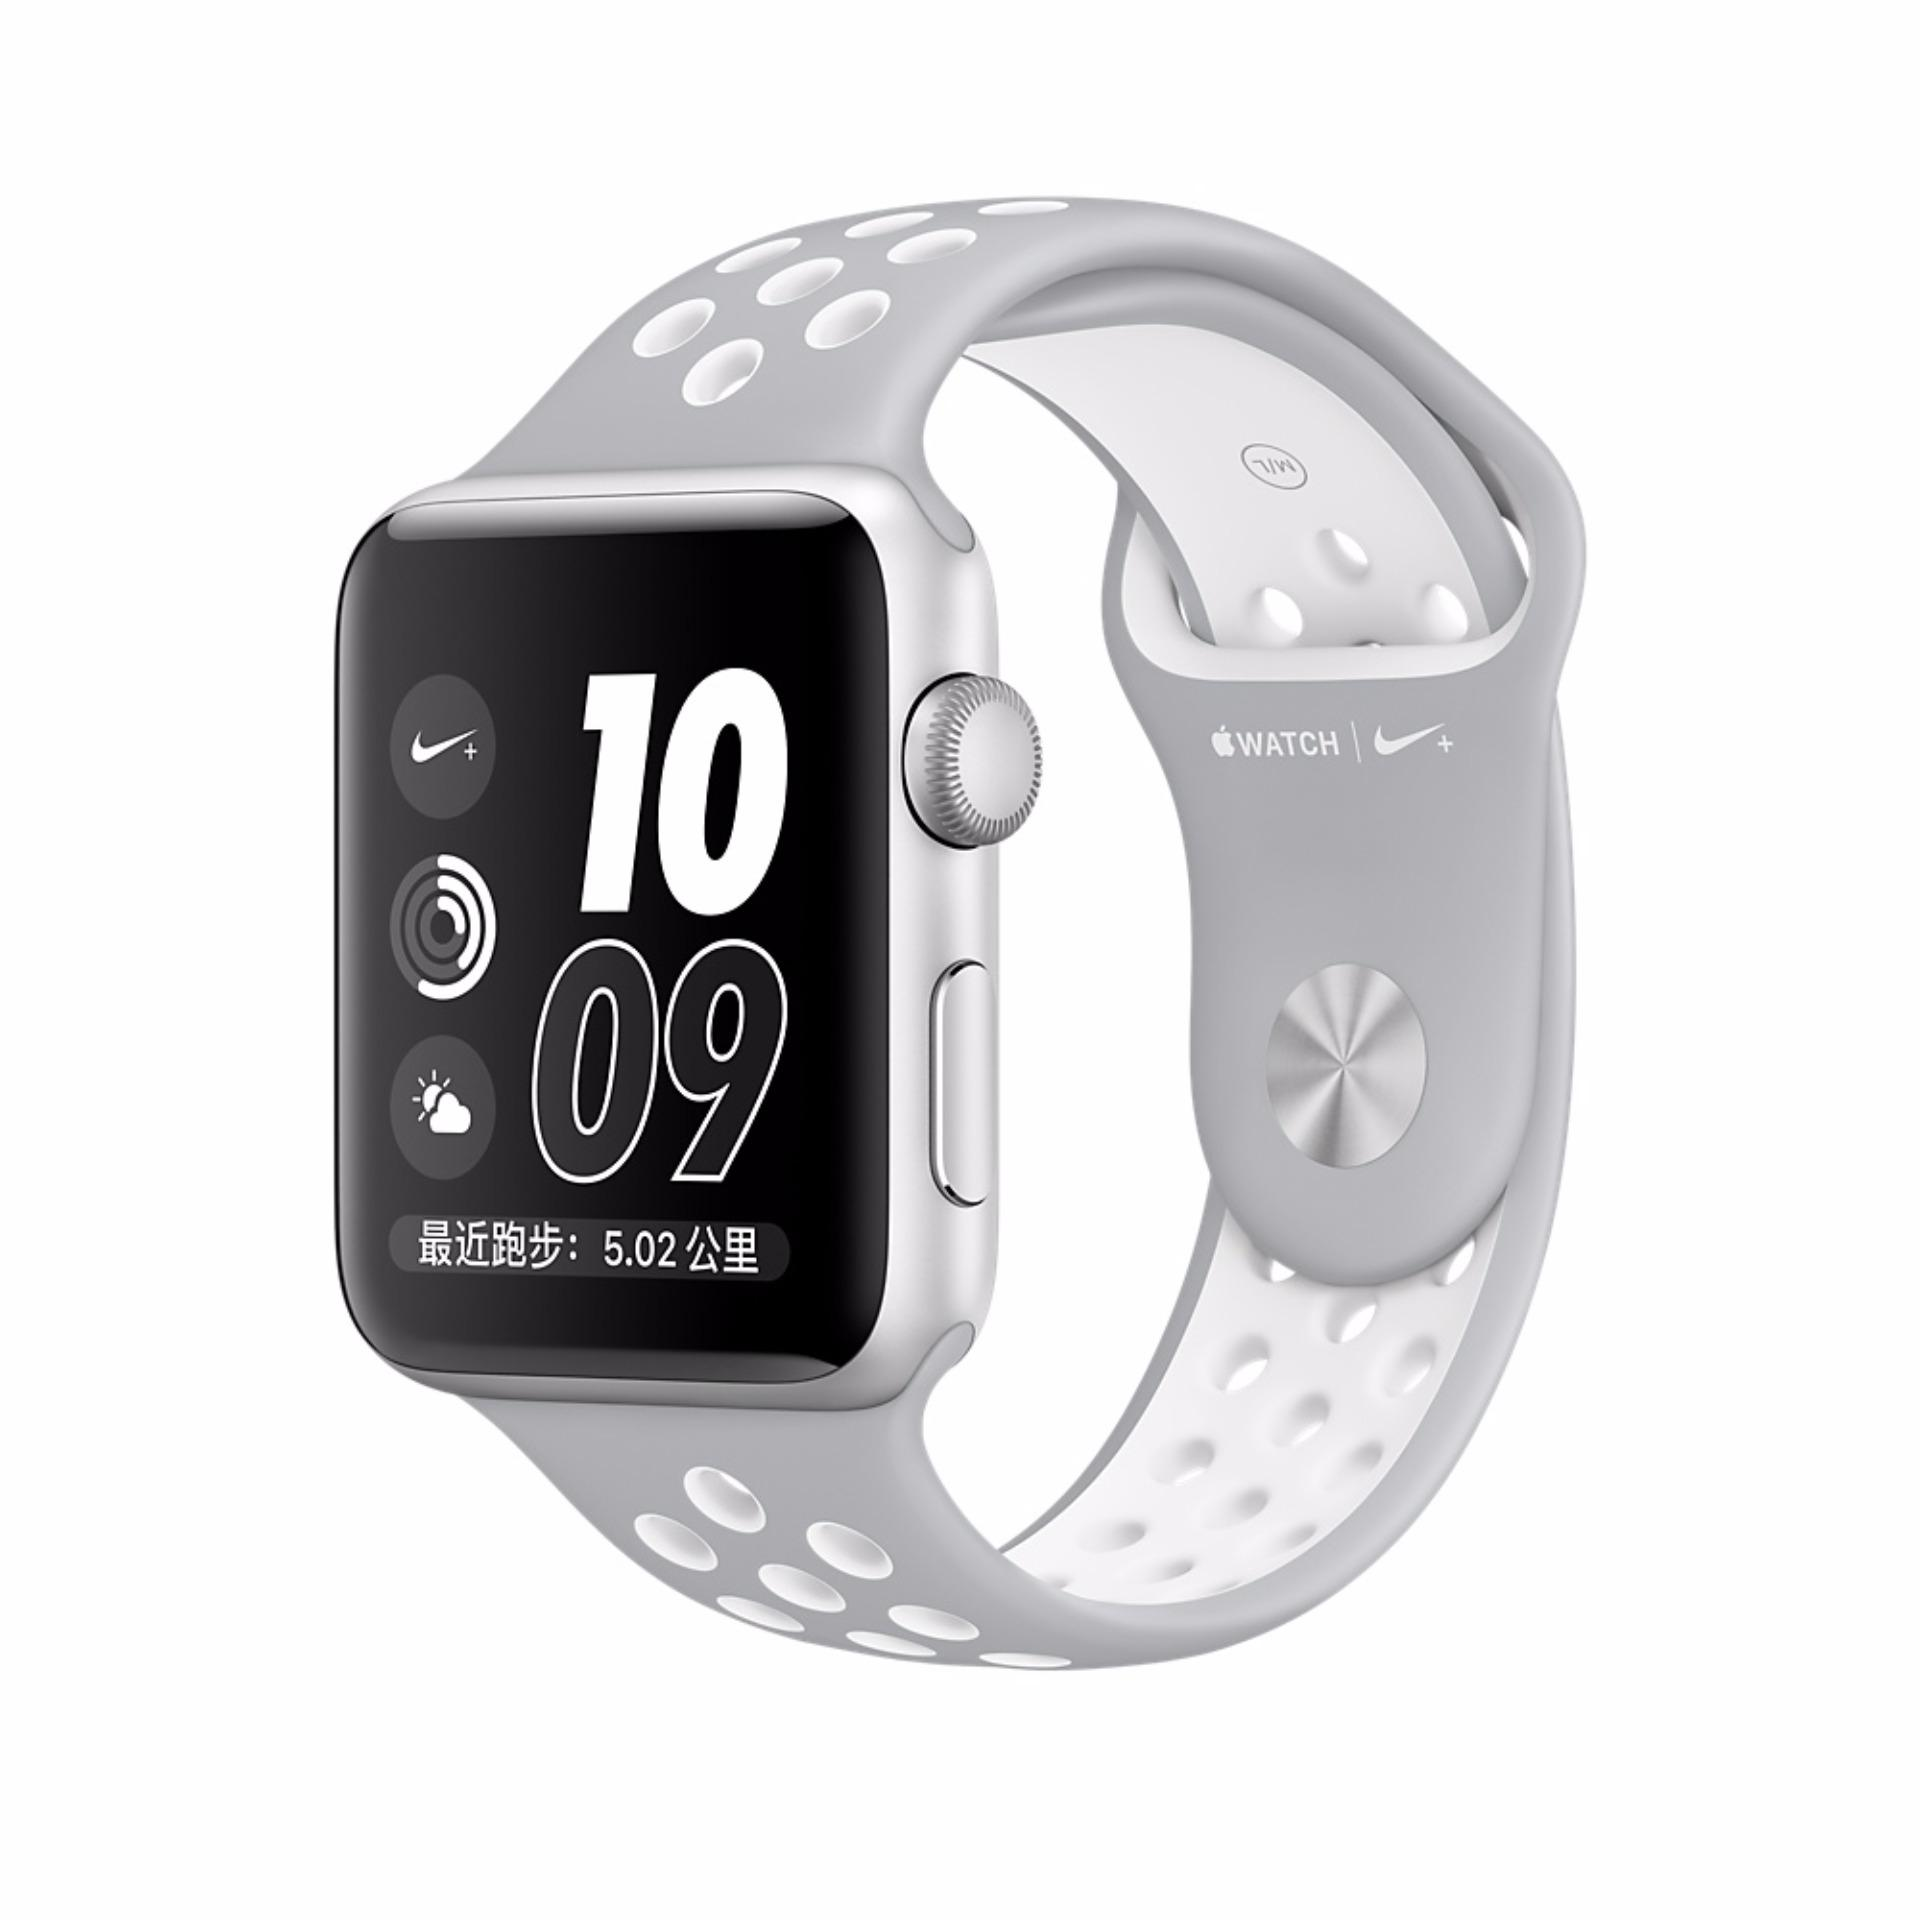 Jual Apple Watch Apple Iwatch Sport Band Strap 38Mm Size S M Original